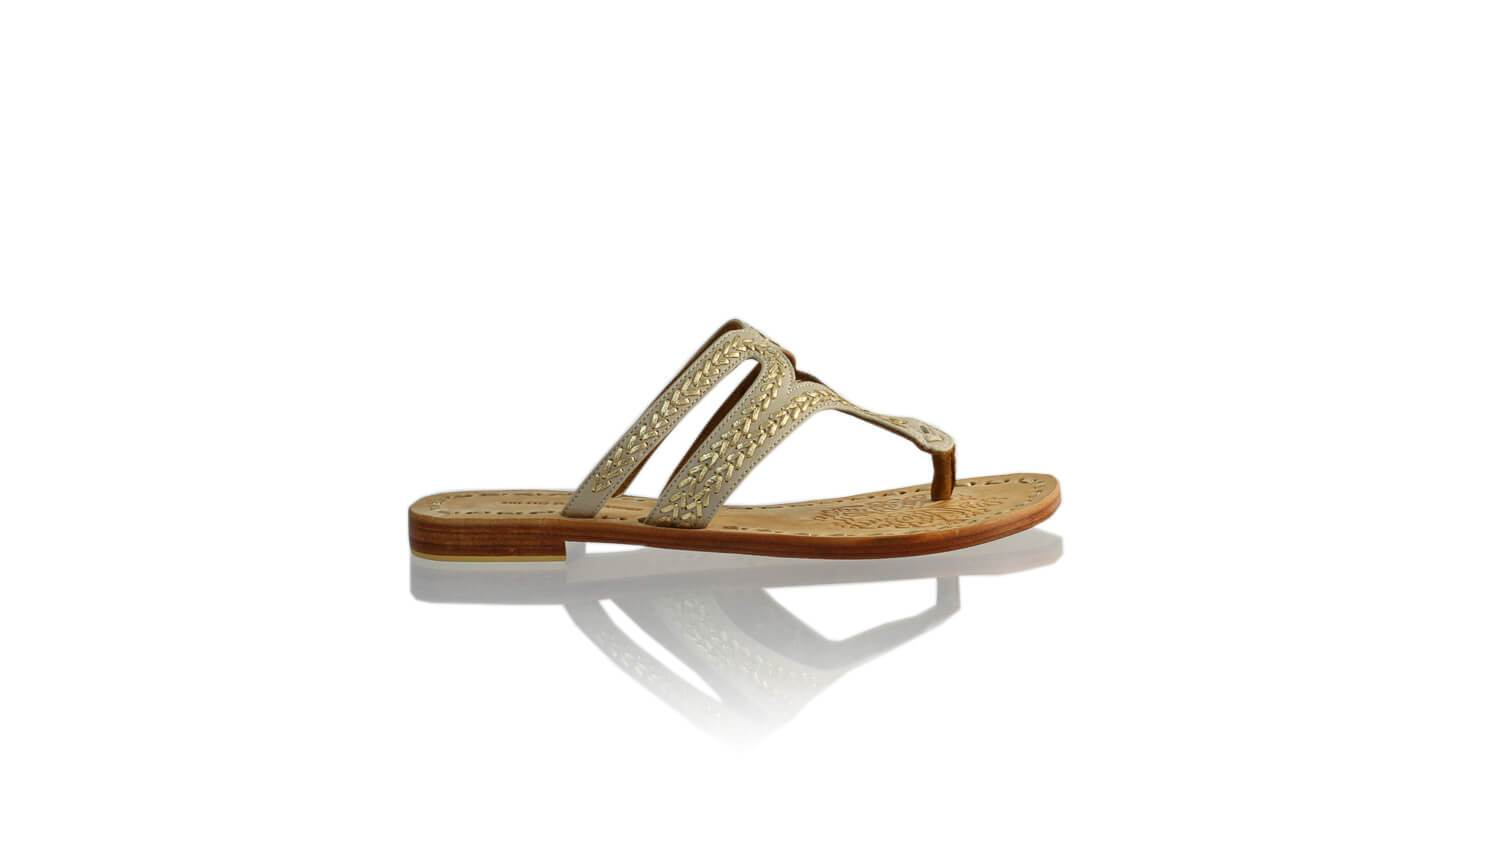 Leather-shoes-Arrah 20mm Flat - Ivory & Gold-sandals higheel-NILUH DJELANTIK-NILUH DJELANTIK